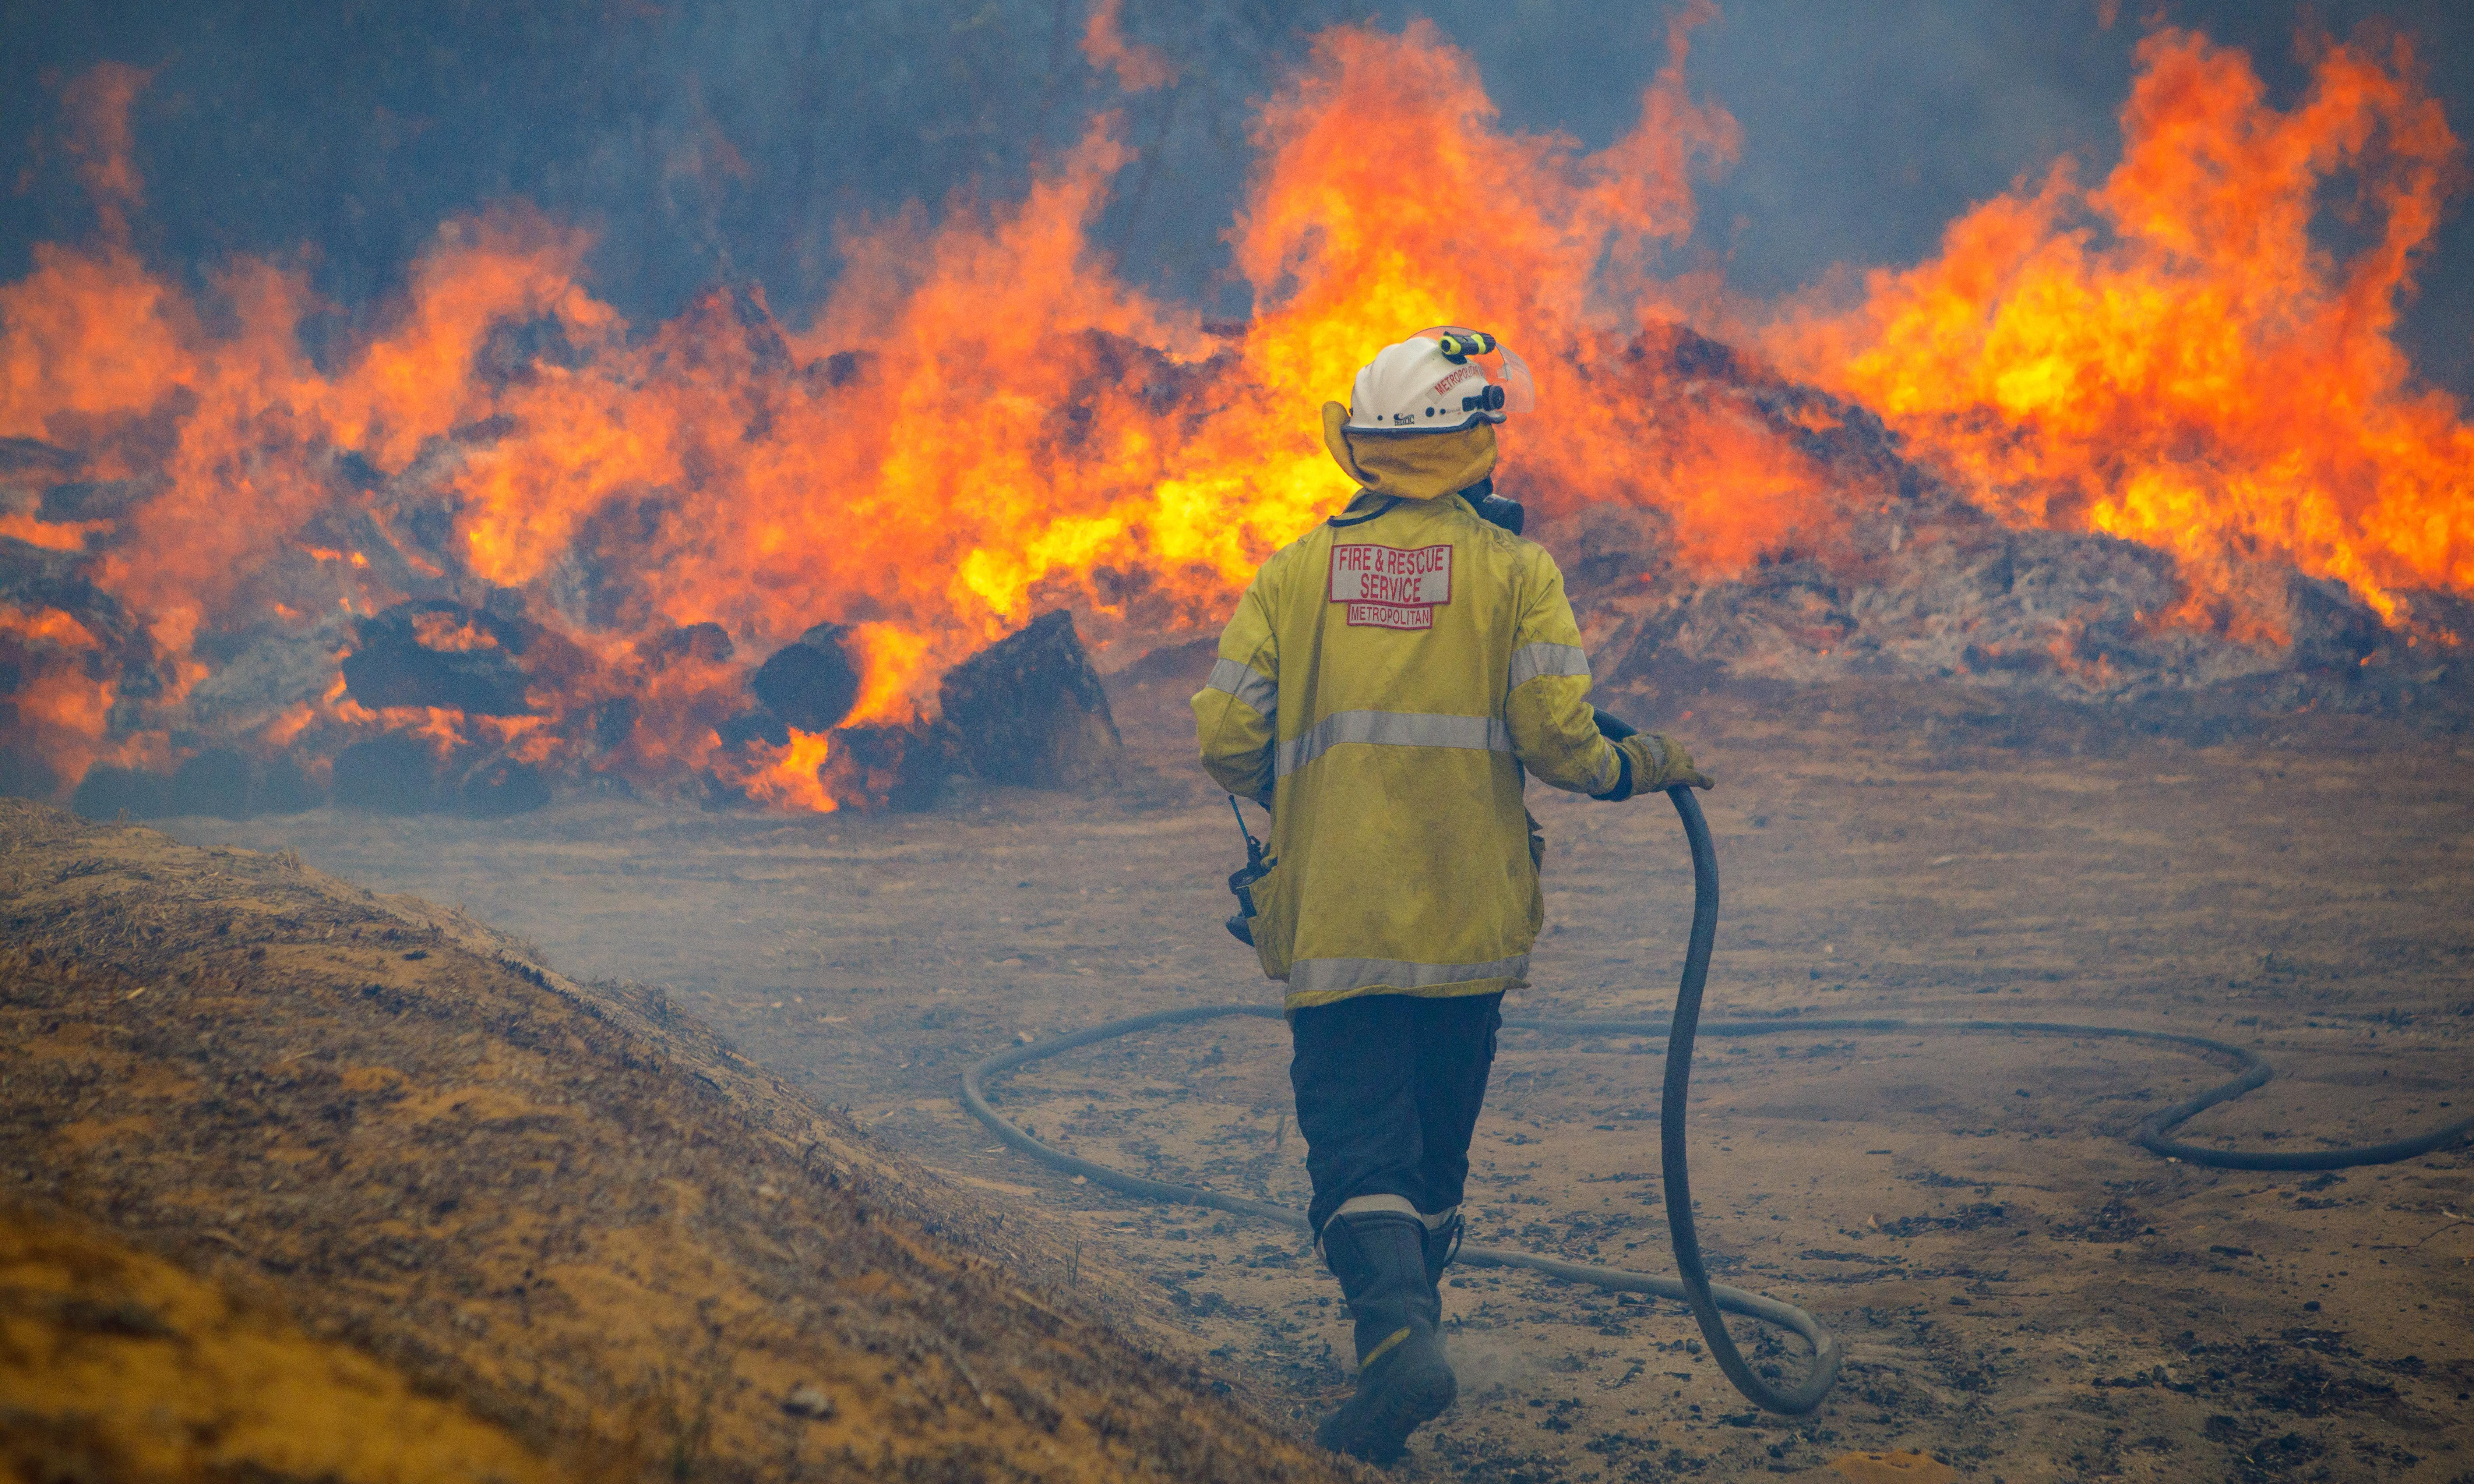 NSW fires: residents in path of 370,000ha bushfire near Sydney told it's 'too late to leave'